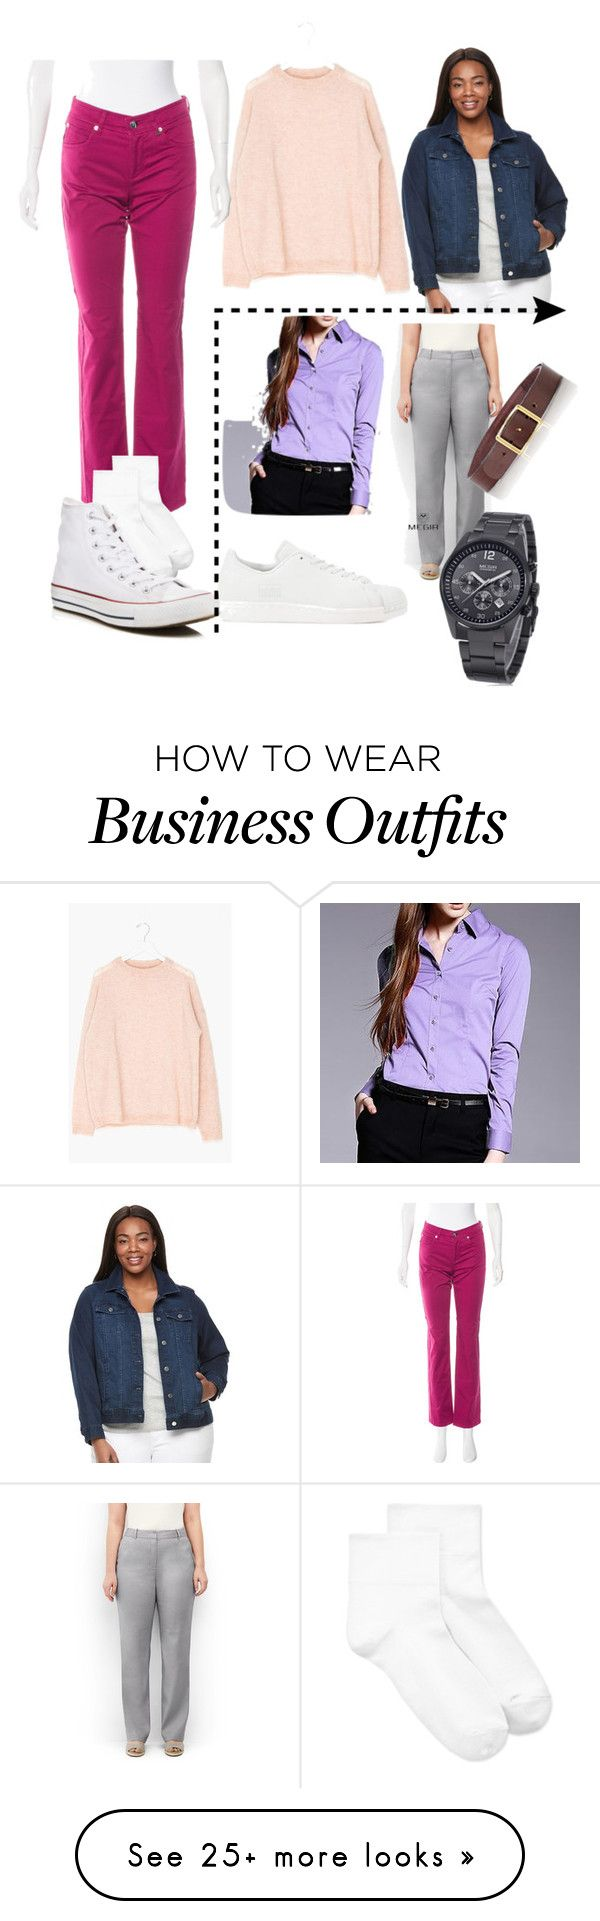 """Abby McWilliams (Lori Loughlin) The New Kids 1985"" by katrinalester123 on Polyvore featuring Bogner, Hue, Converse, Apt. 9, Lands' End, C.S. Simko, adidas Originals and plus size clothing"